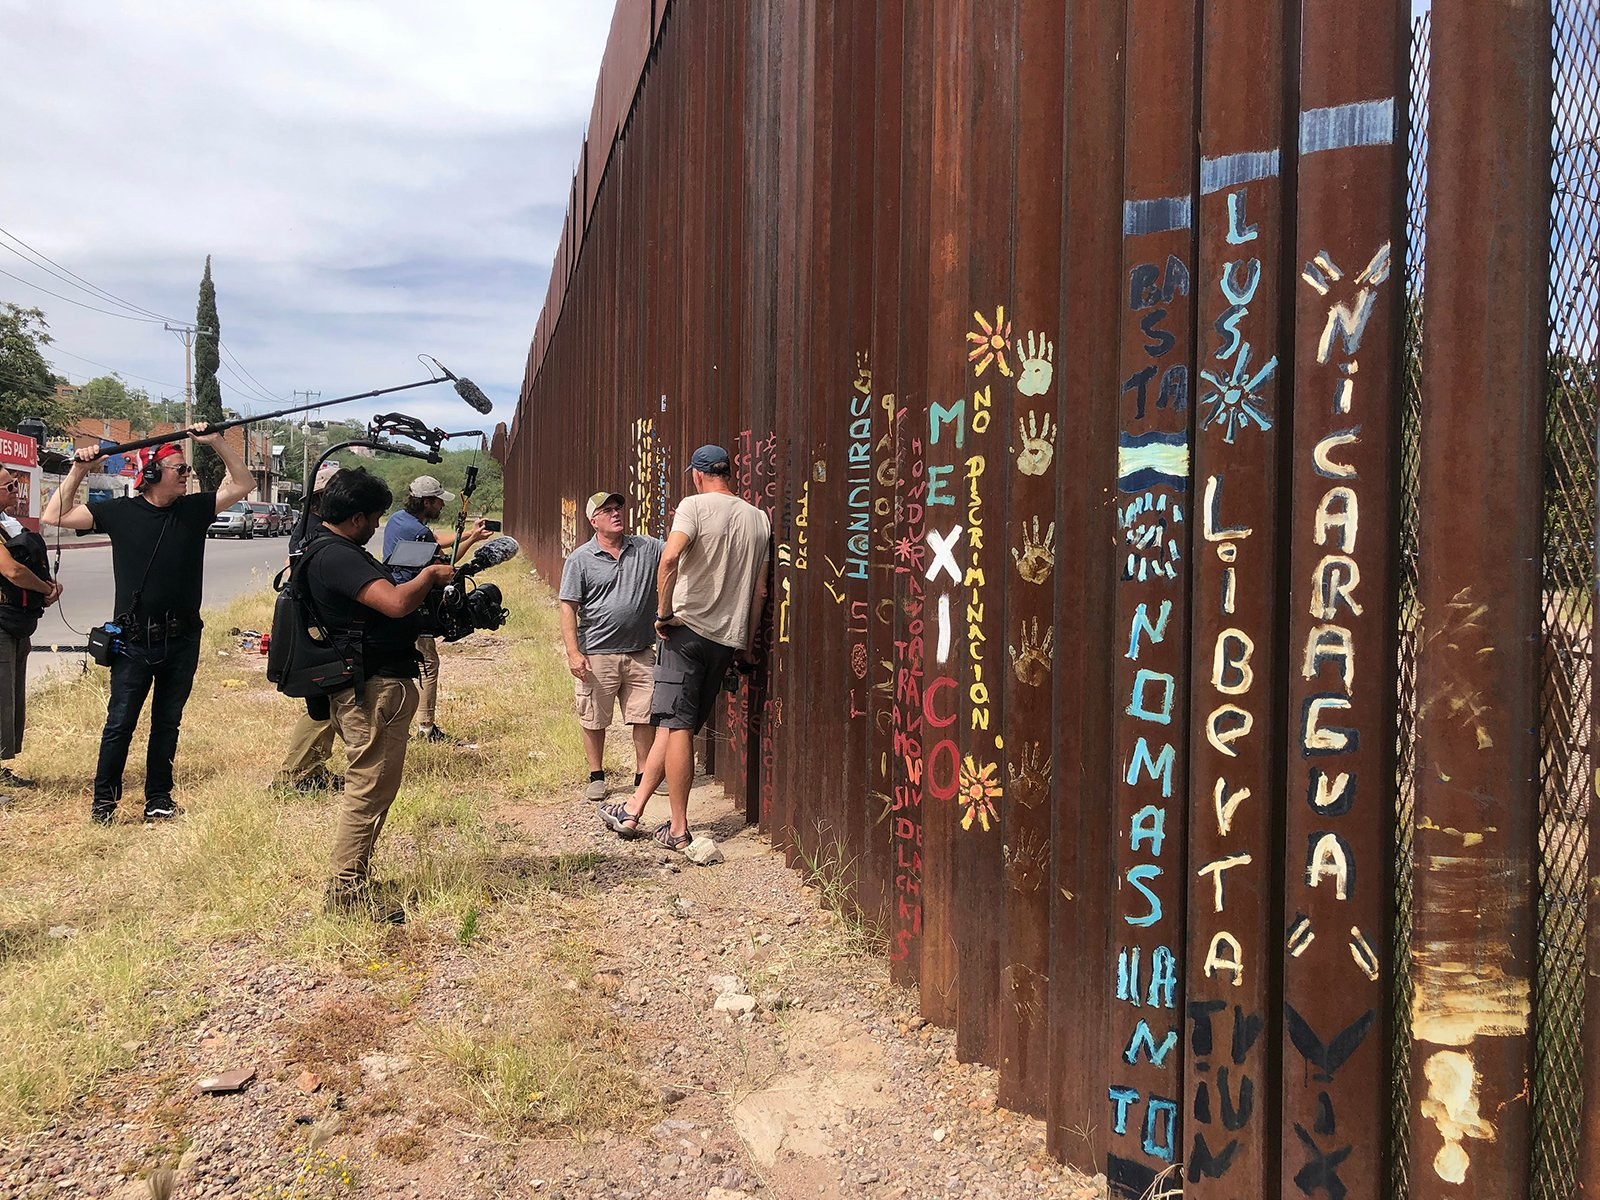 An interview by We The People Ride is conducted along the border fence on the U.S.-Mexico border in late September 2021. Photo courtesy of Vote Common Good